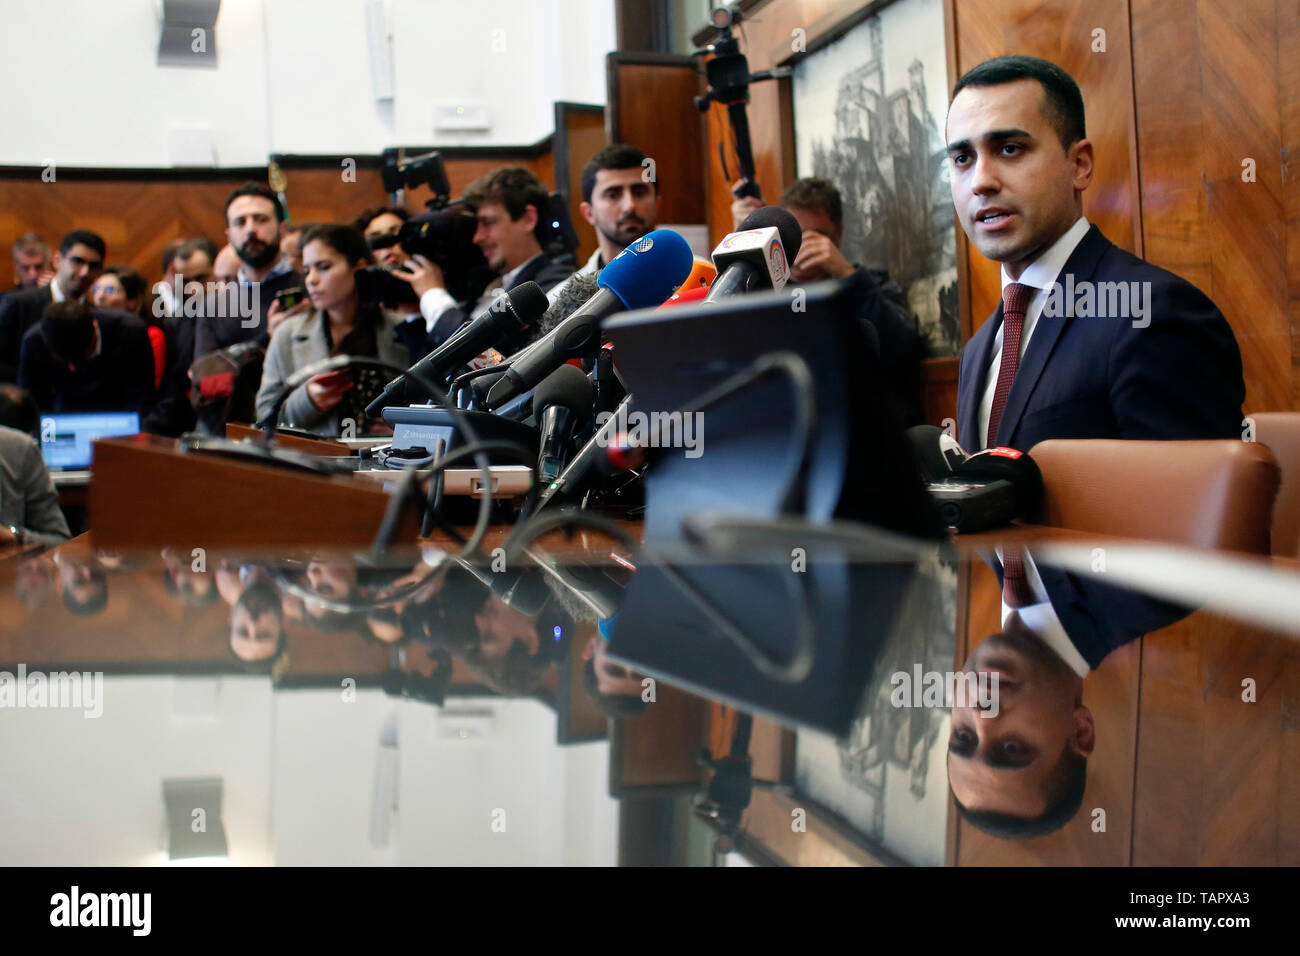 Luigi Di Maio  Rome May 27th 2019. Press conference of the Vice-Premier Luigi Di Maio of Movement 5 Stars after the results of the European elections 2019. Foto Samantha Zucchi Insidefoto - Stock Image